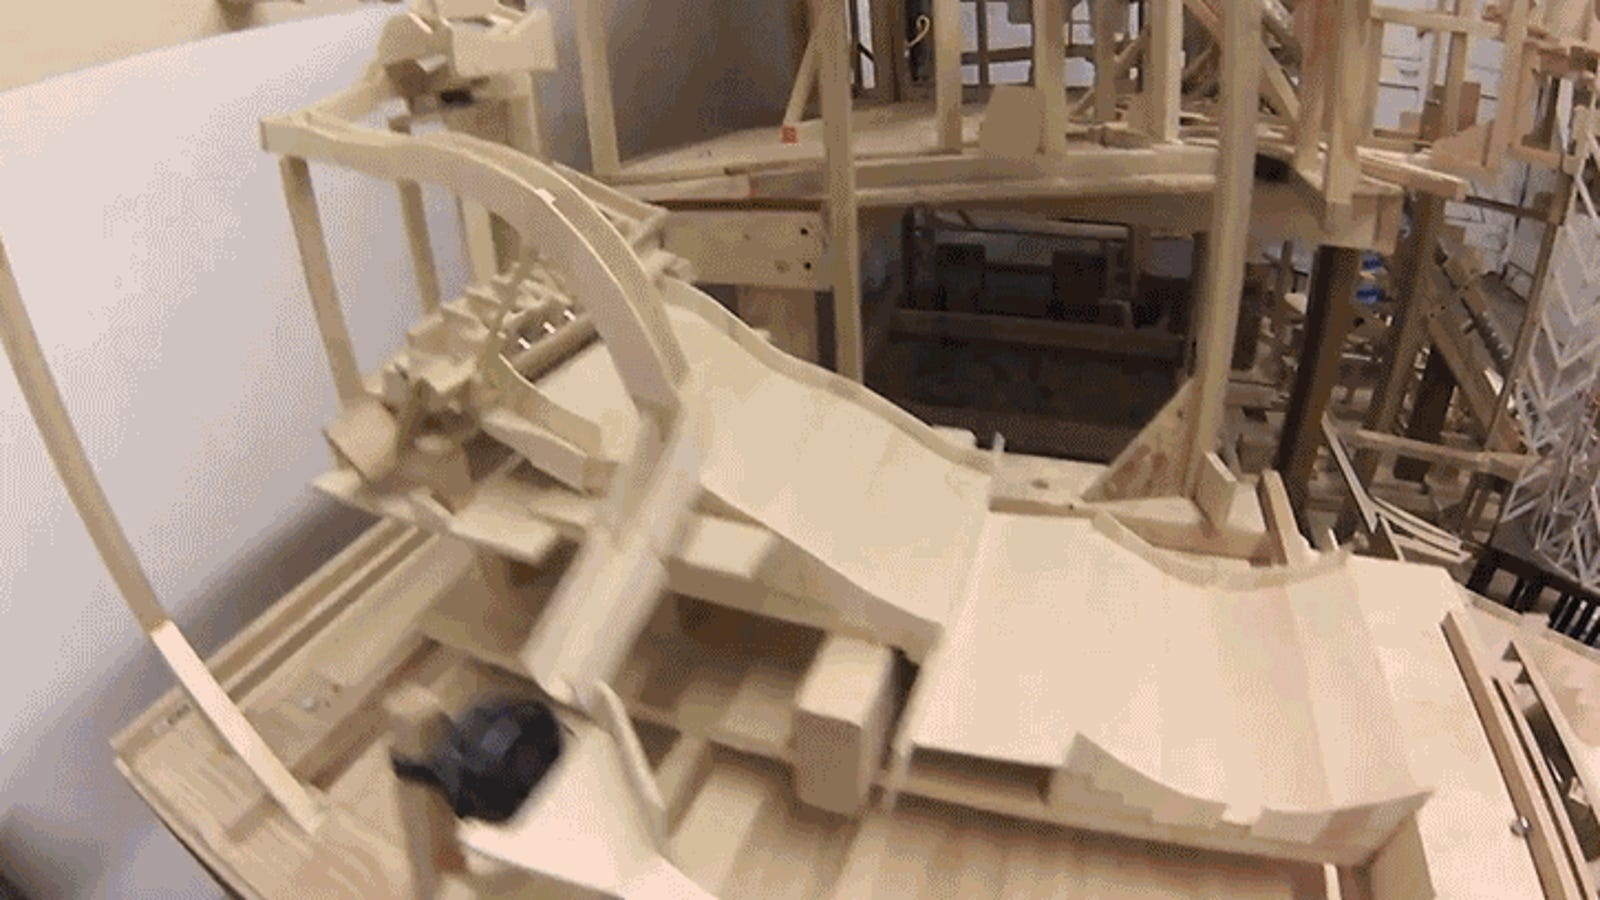 A Massive Eight-Feet Tall Mountain Marble Maze Is Better Than Watching a Movie